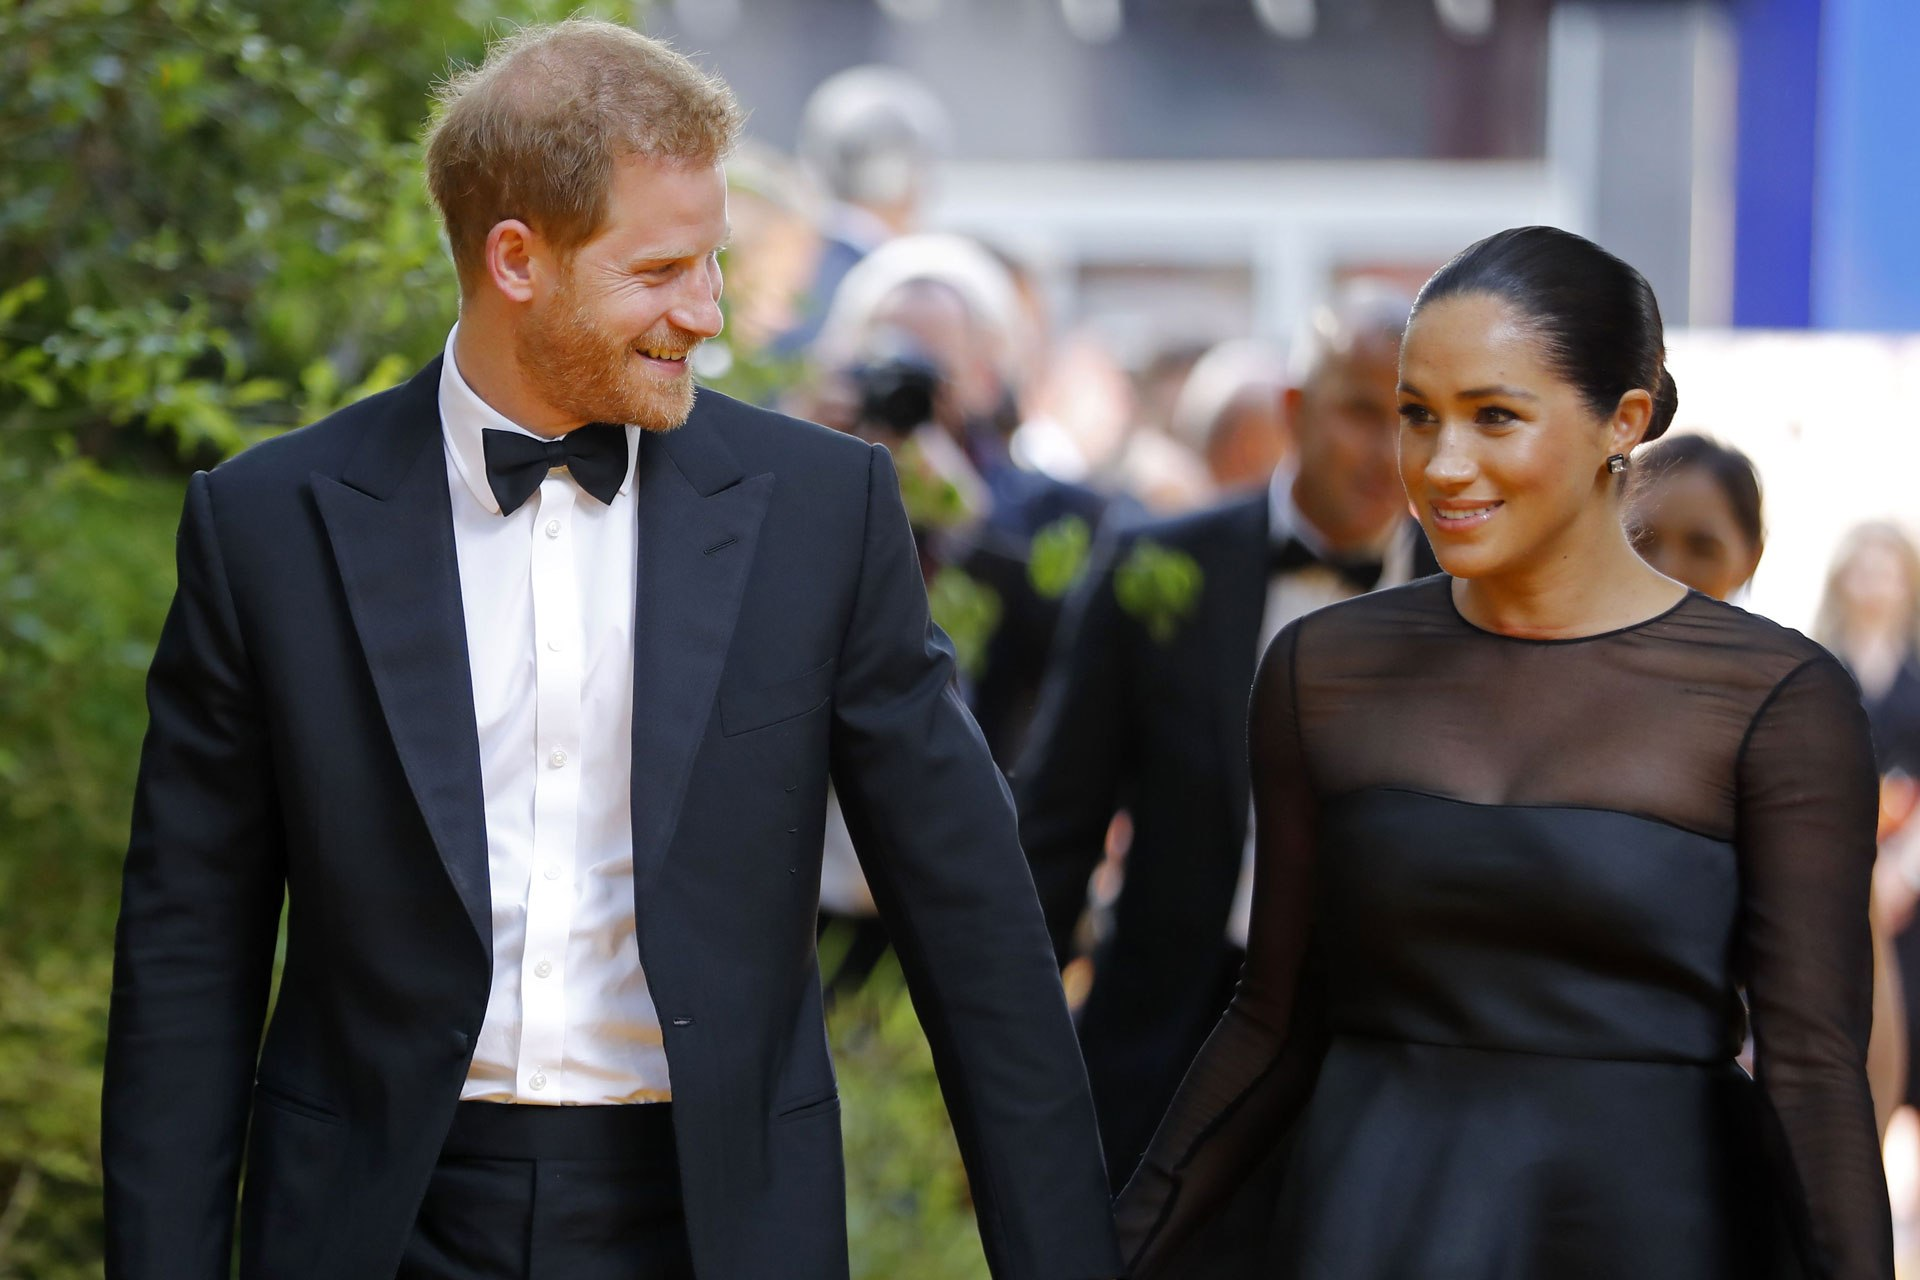 Prince Harry posted a sweet message to Meghan Markle on her 38th birthday